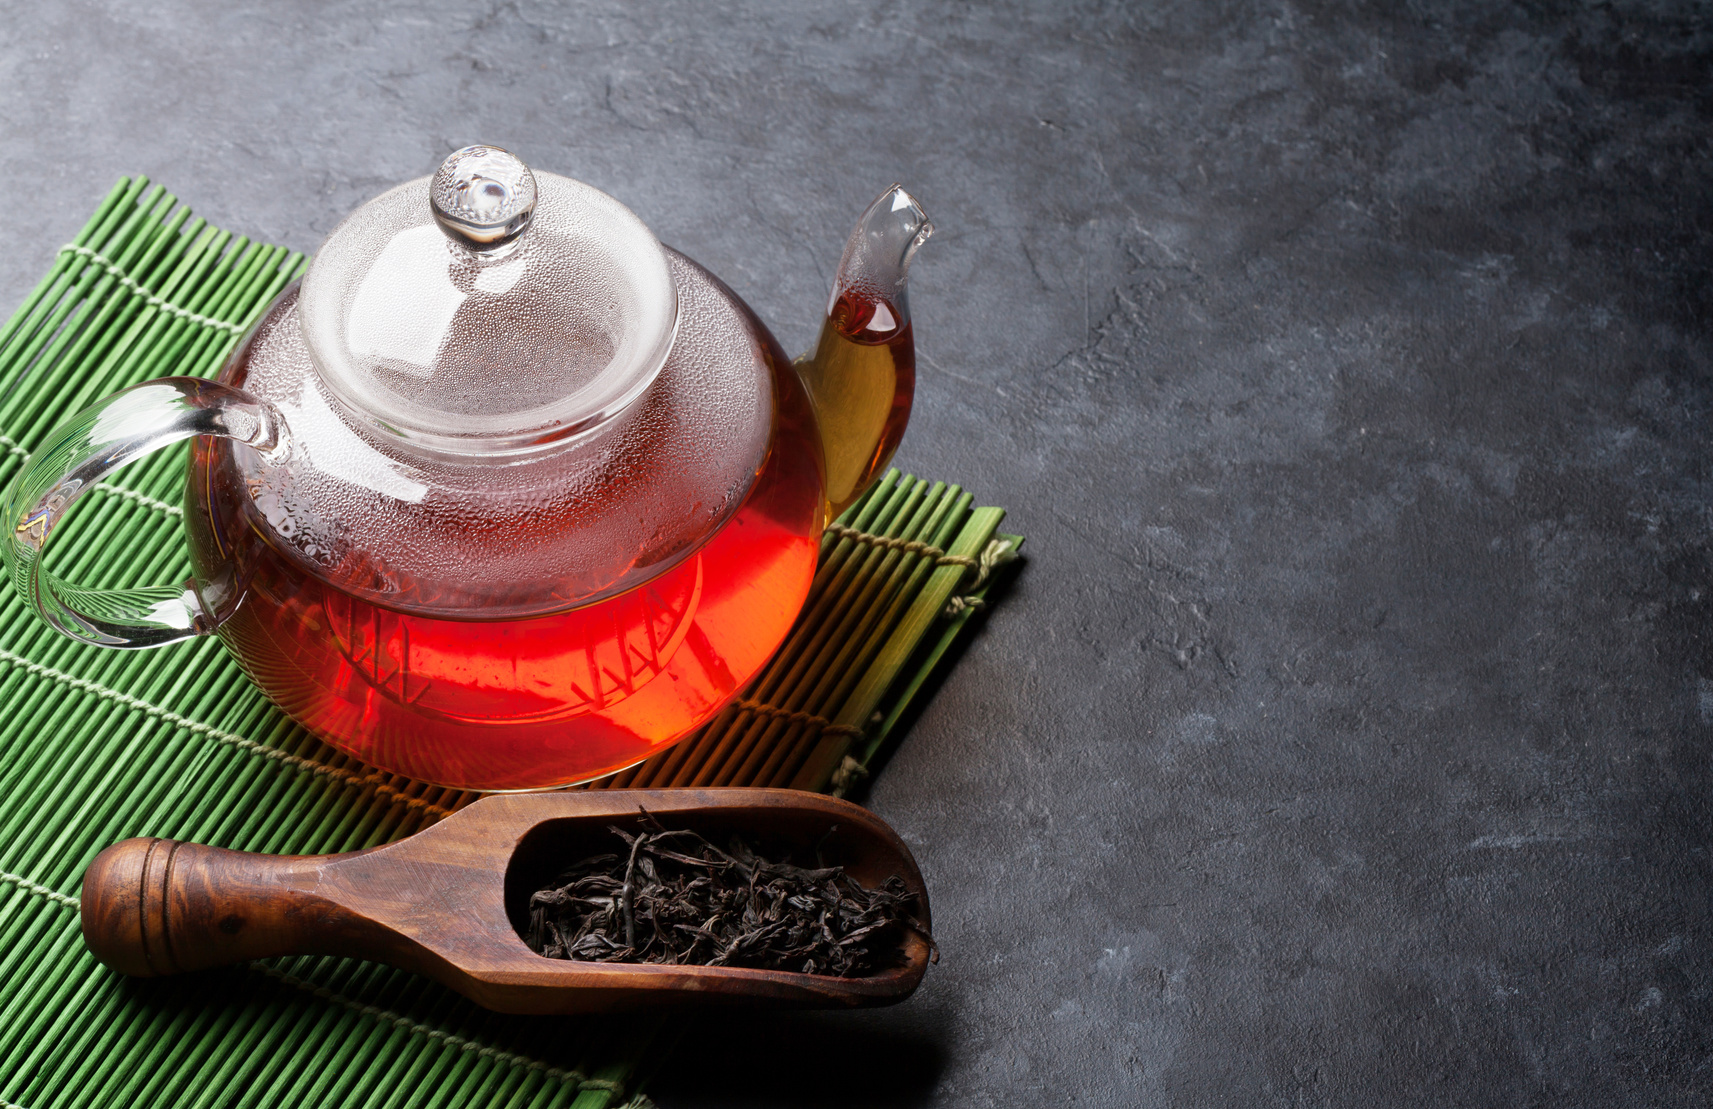 Teapot and dry tea in spoon on stone table. View with copy space